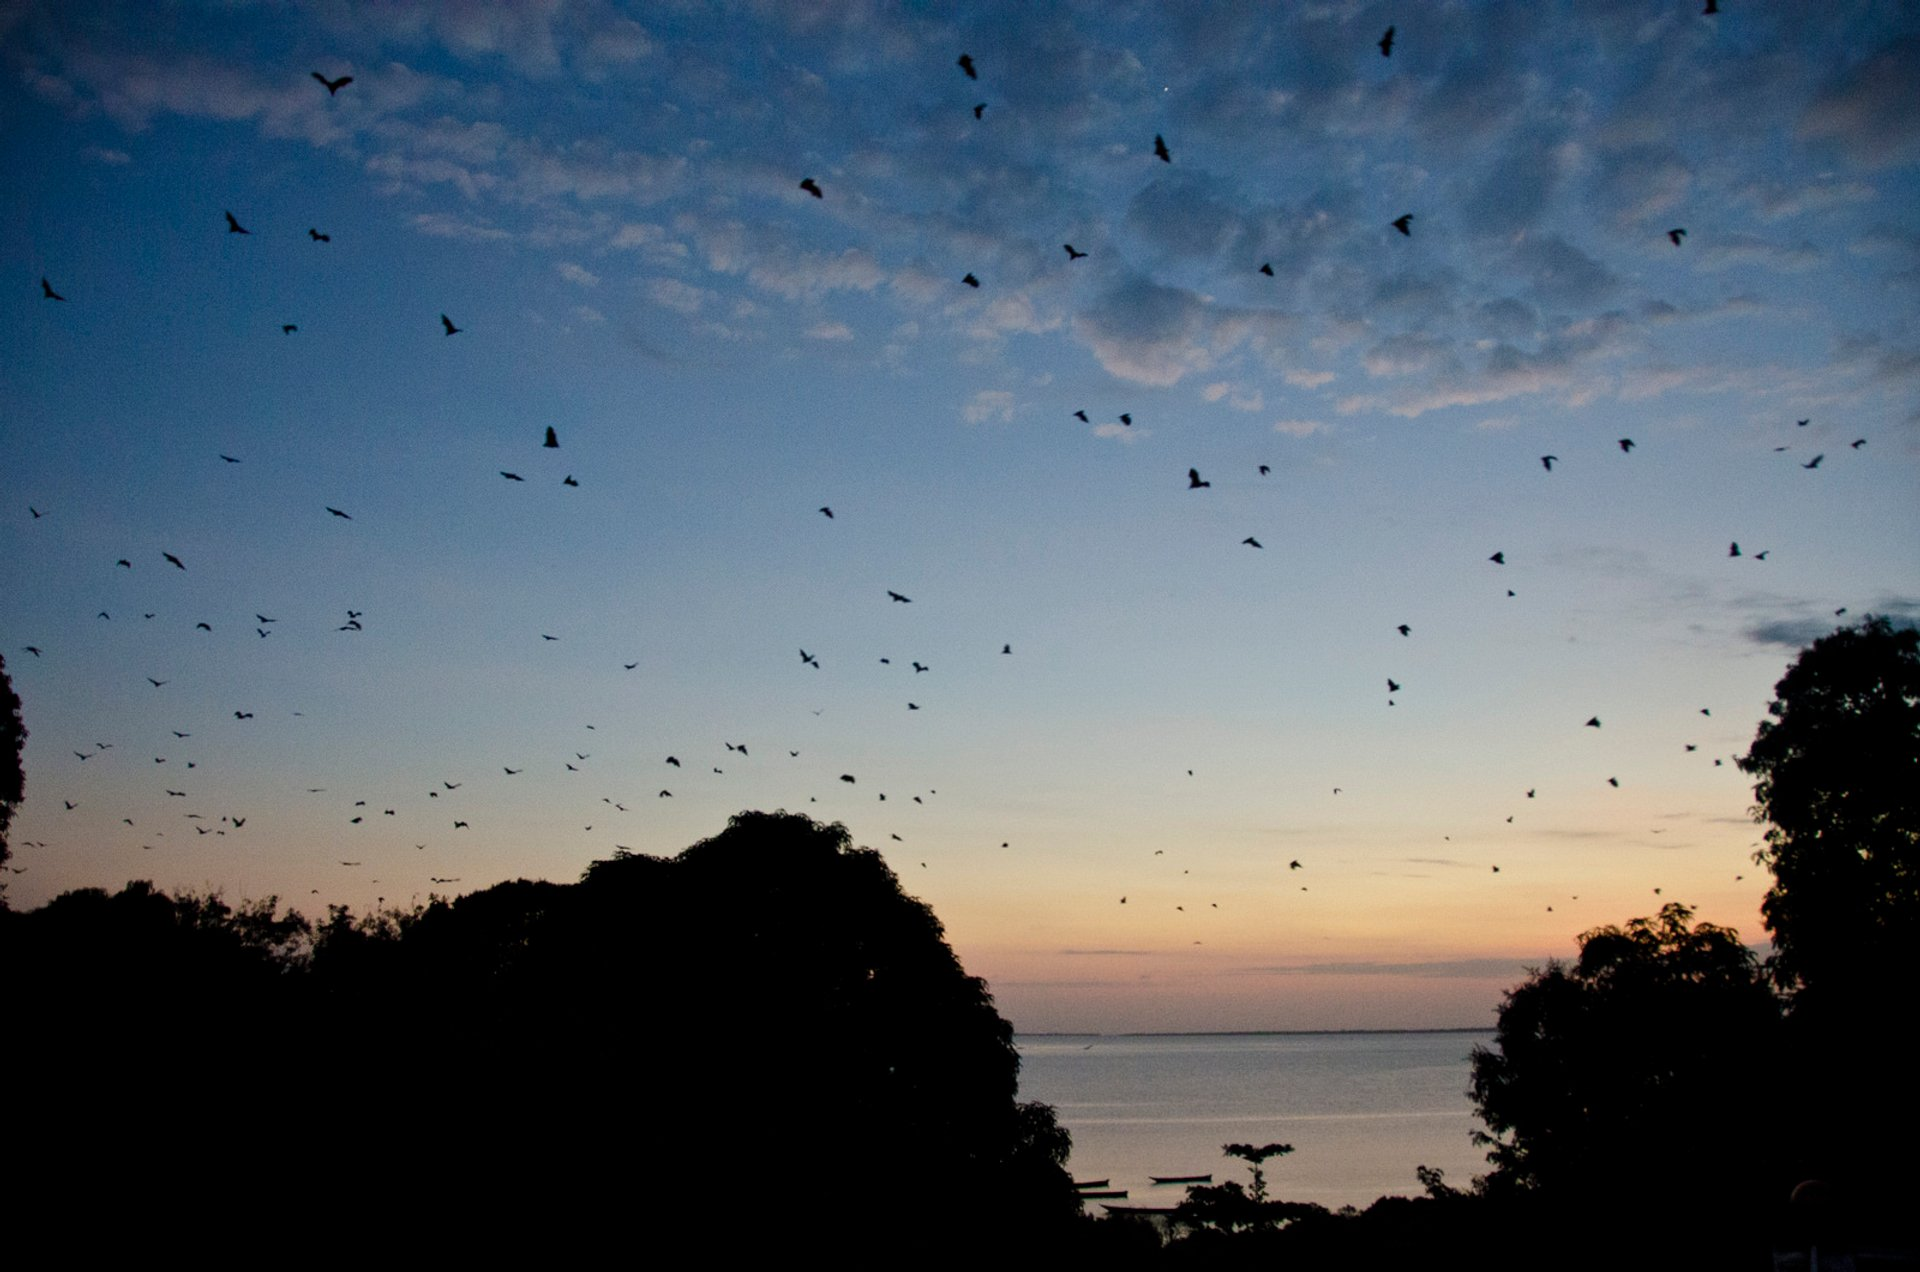 Pemba - Flying foxes (bats on a hunt for mangos) 2020